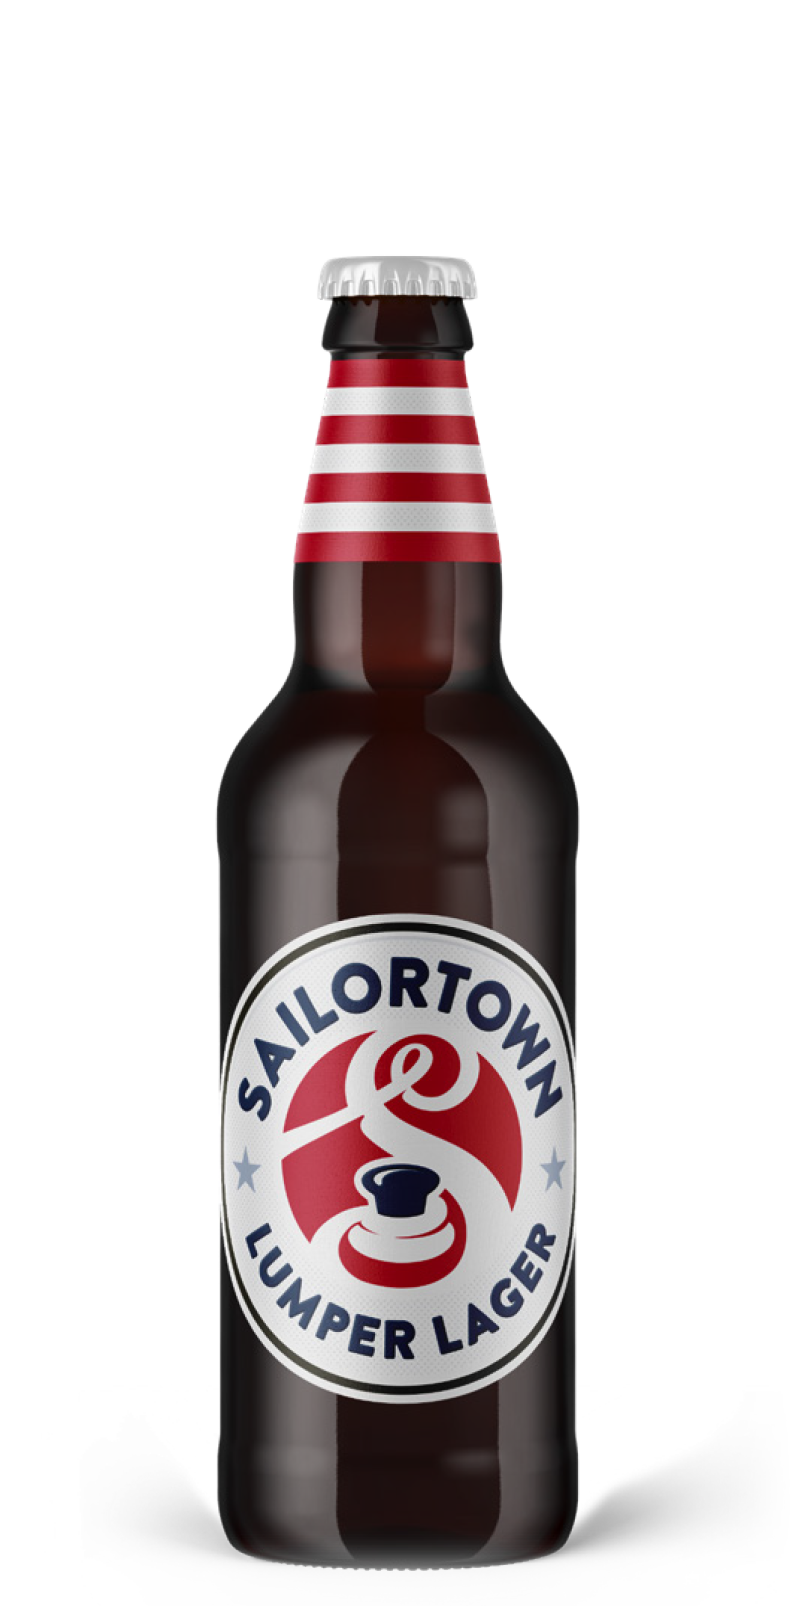 Sailortown Beer